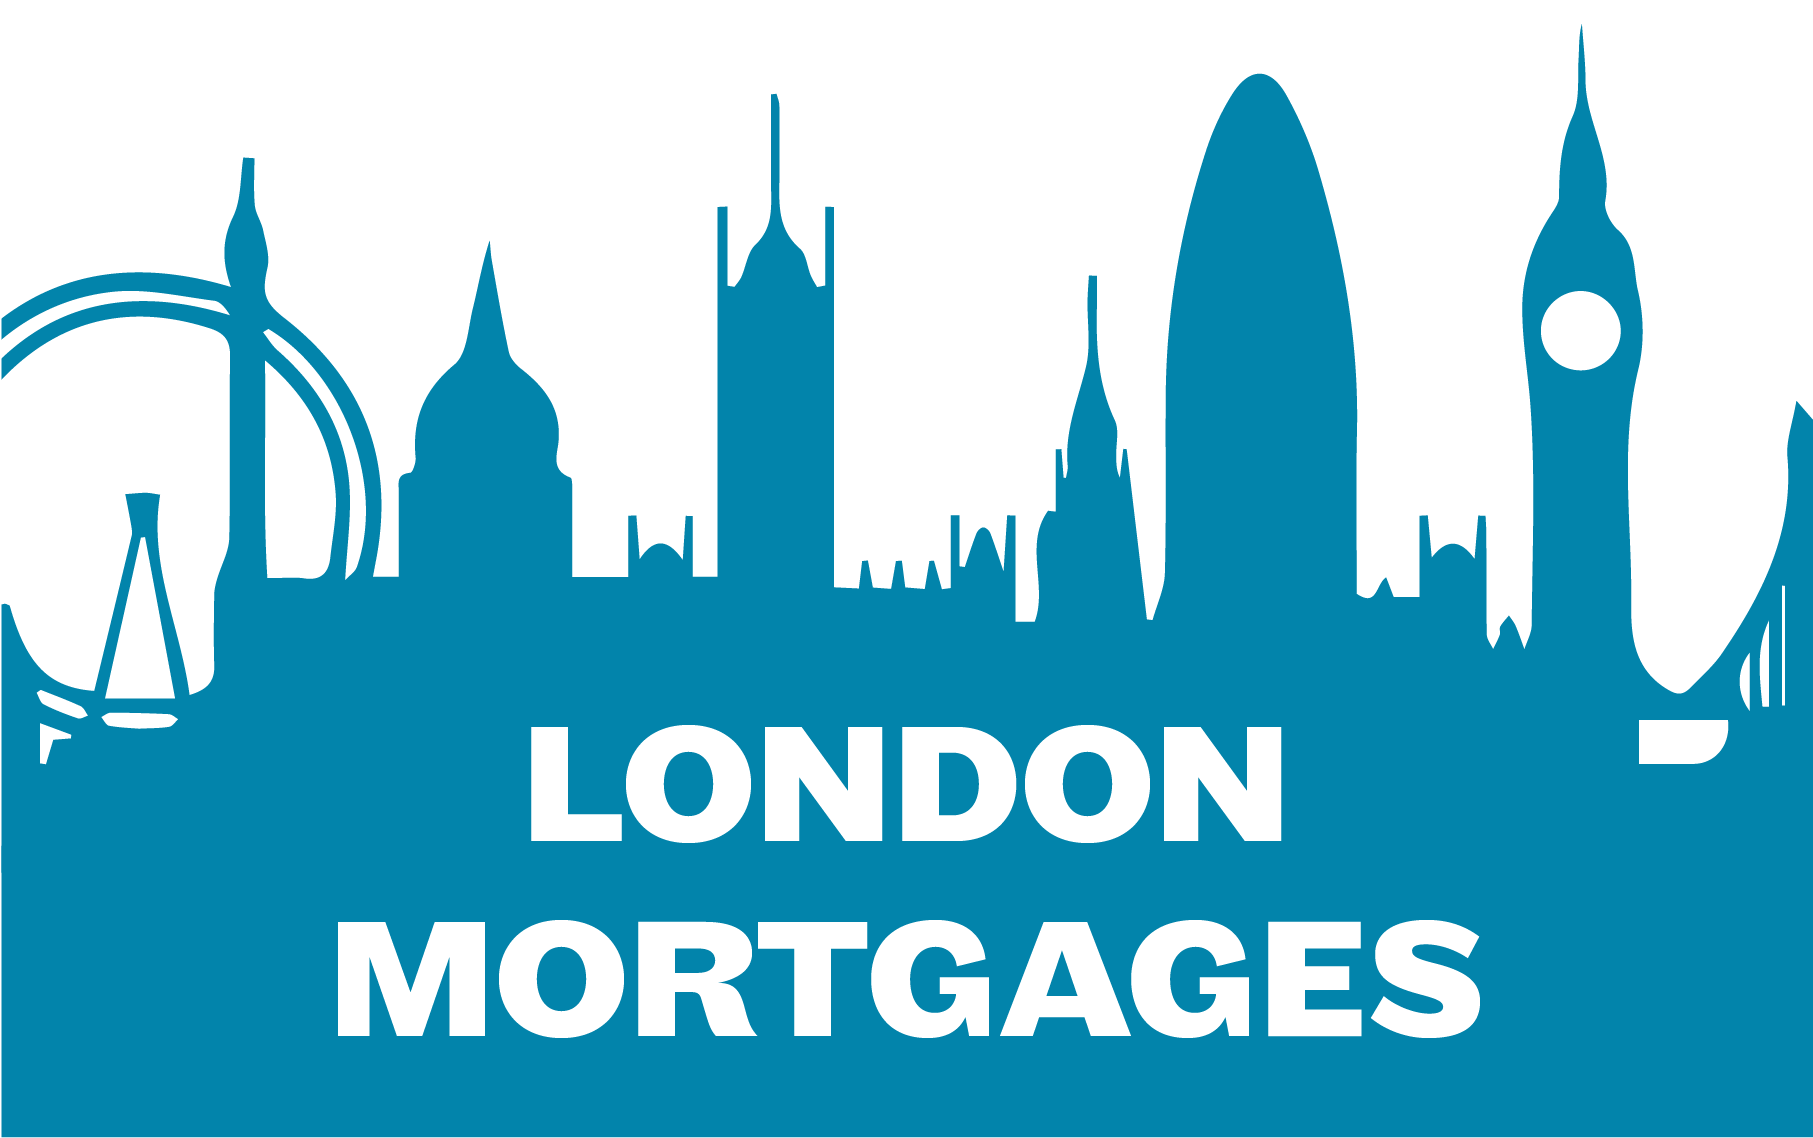 London Mortgages